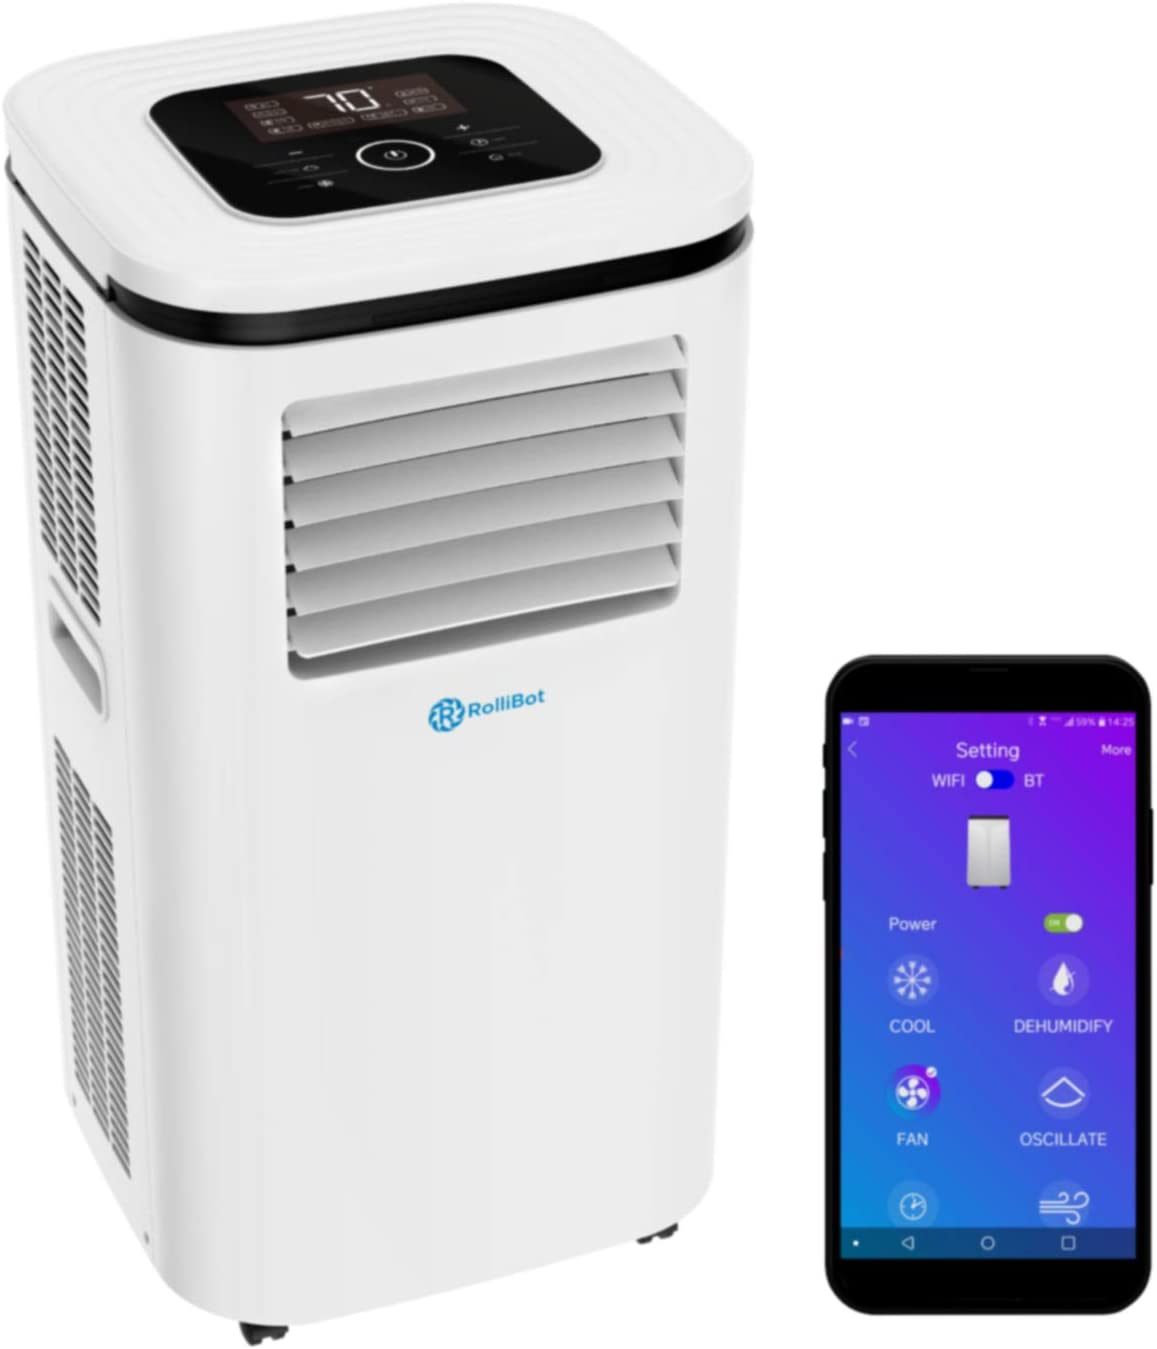 Rollibot ROLLICOOL 14,000 BTU Portable Air Conditioner w/App & Alexa Voice Control | Wi-Fi Enabled Portable AC & Dehumidifier | Quiet Operation, Easy Installation (Model: 100H-20)